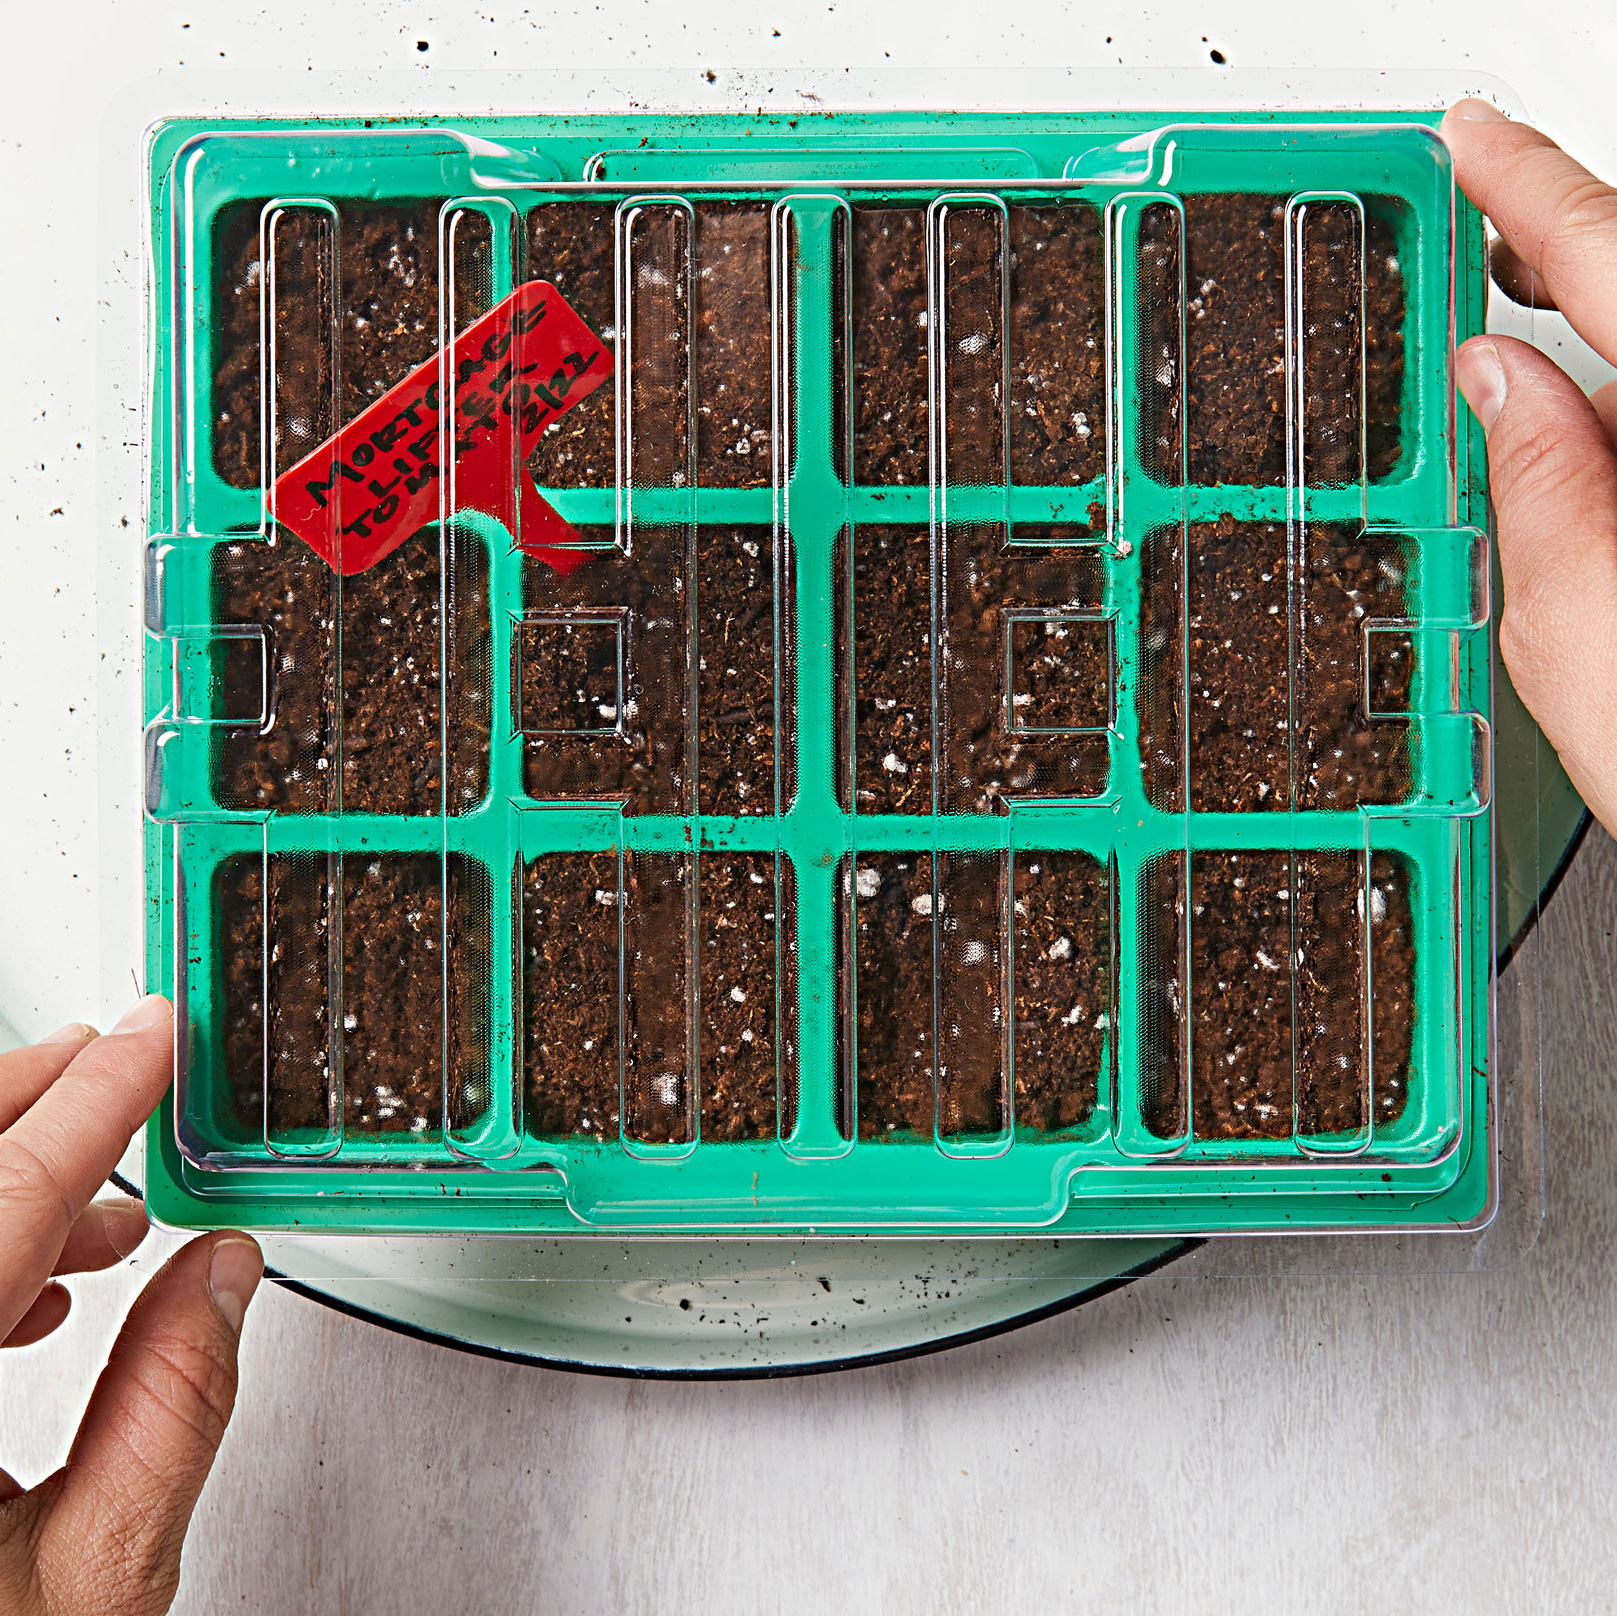 How to start seeds-Step 6